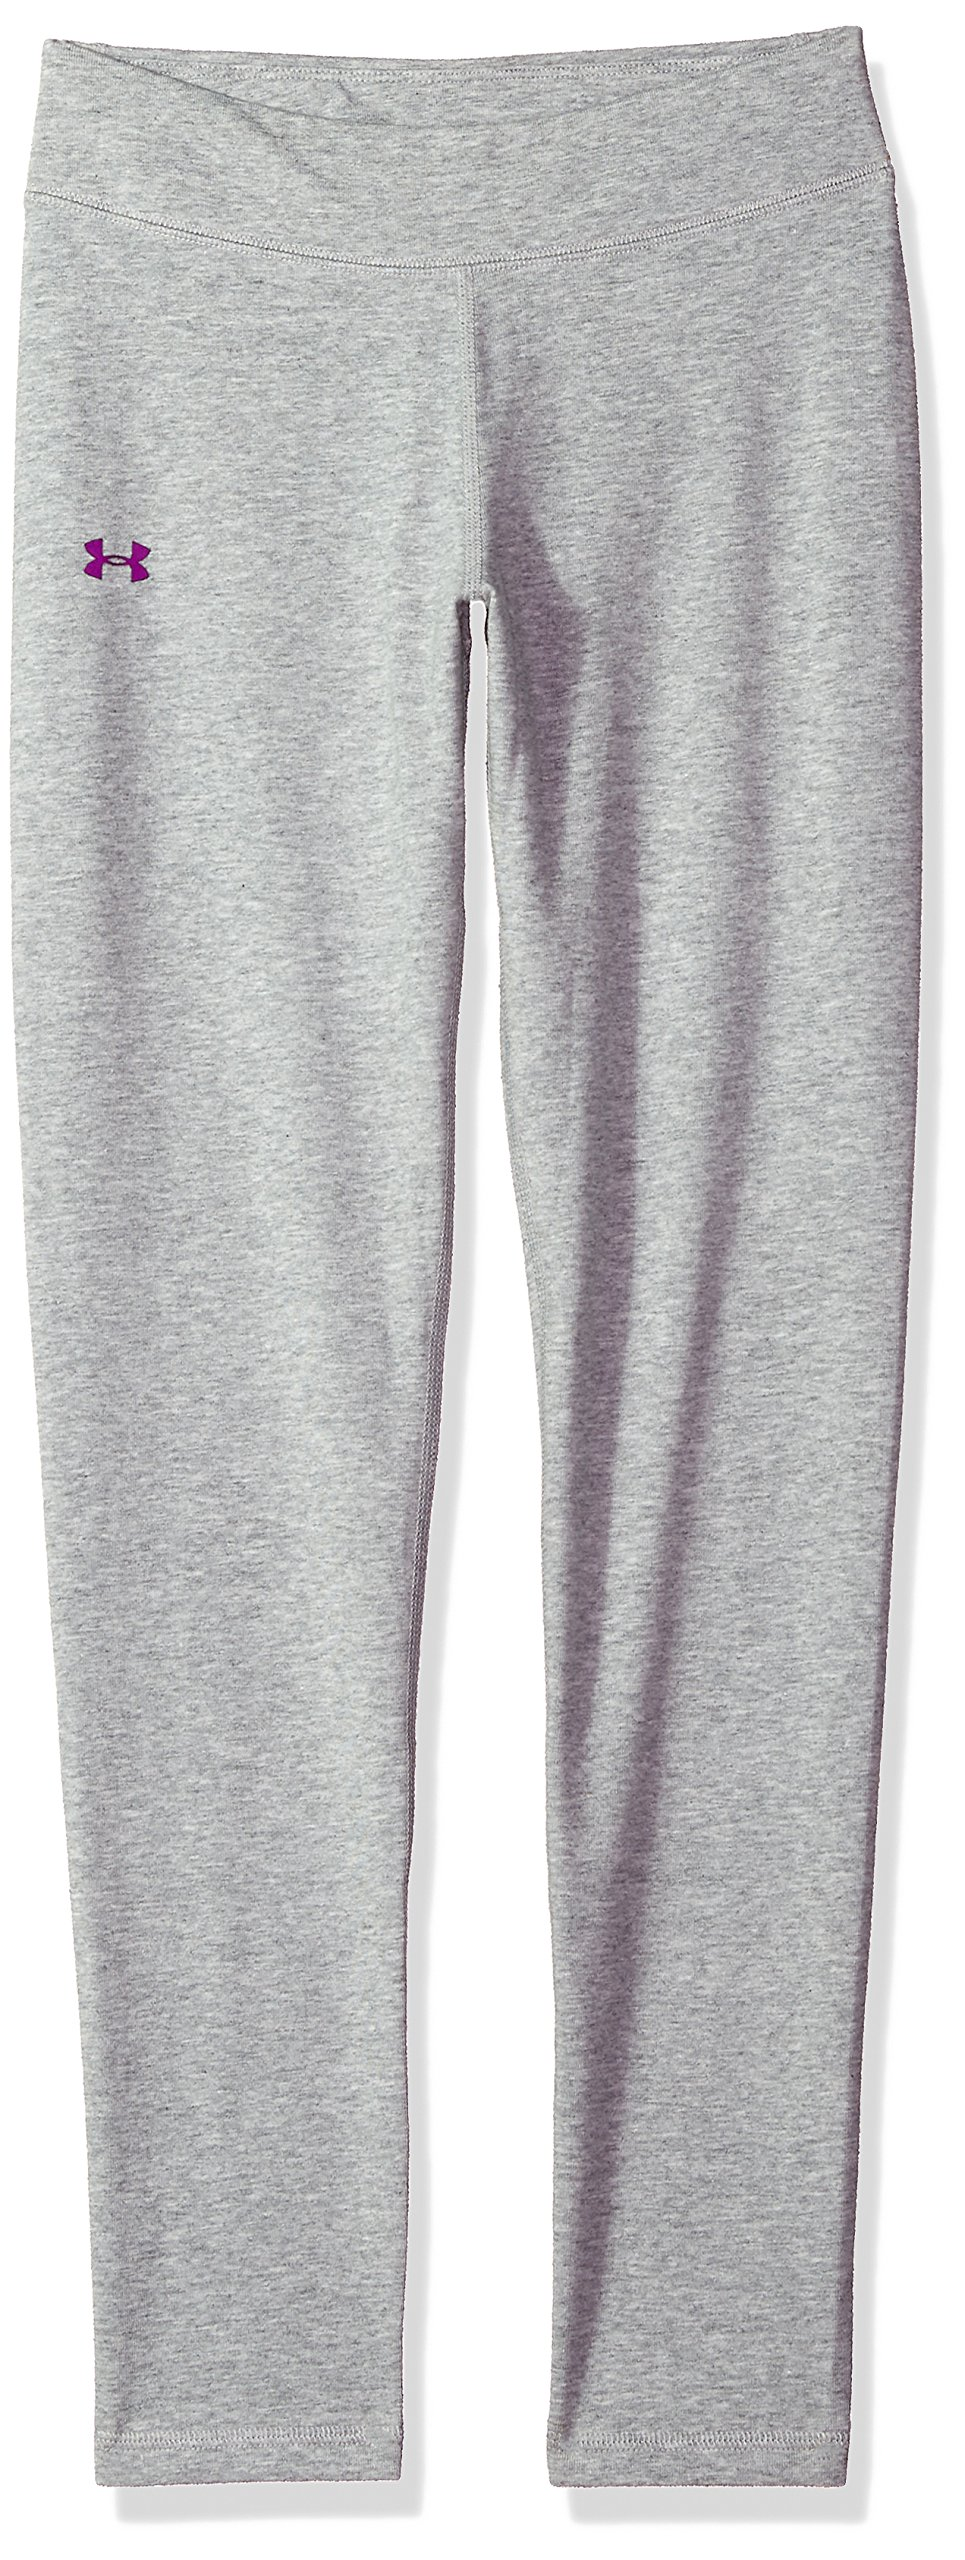 Under Armour Girls Favorite Knit Leggings, True Gray Heather (025)/Purple Rave, Youth X-Large by Under Armour